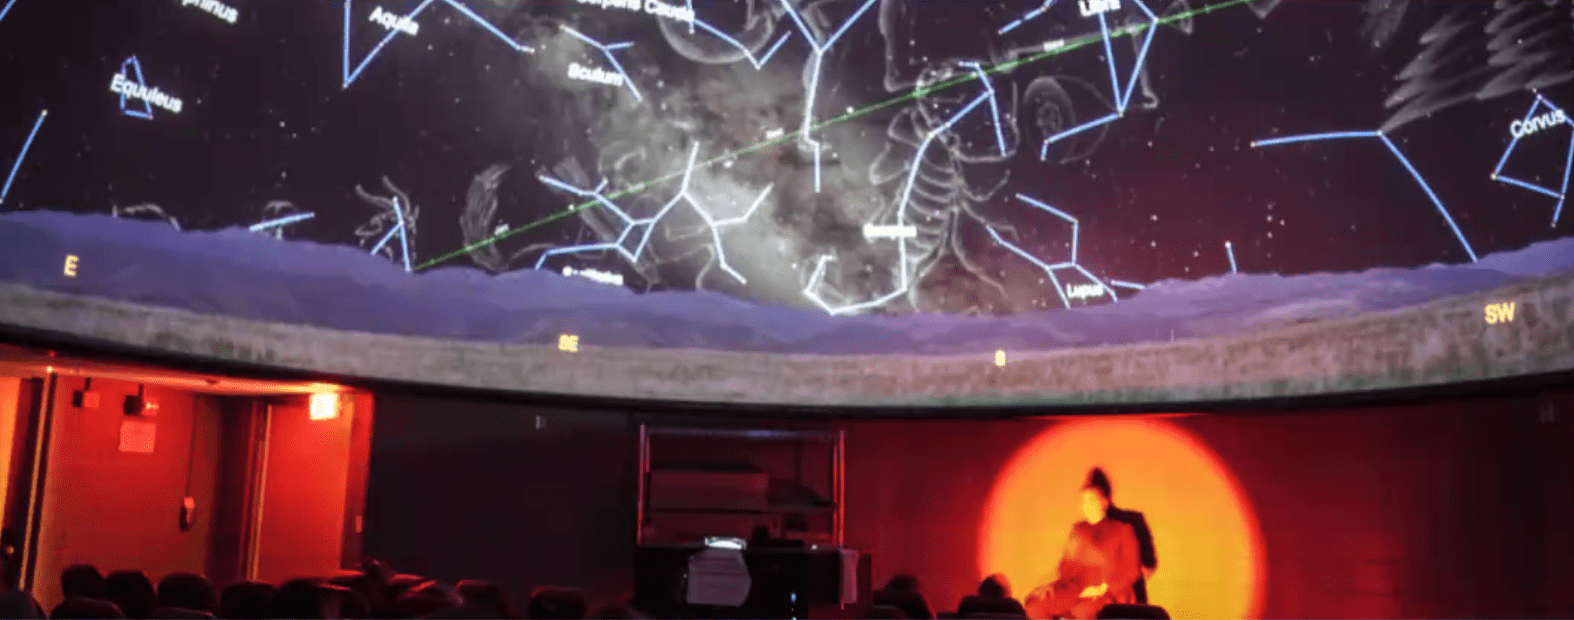 A planetarium show accessible to deaf audiences, with a red light illuminating the ASL interpreter.